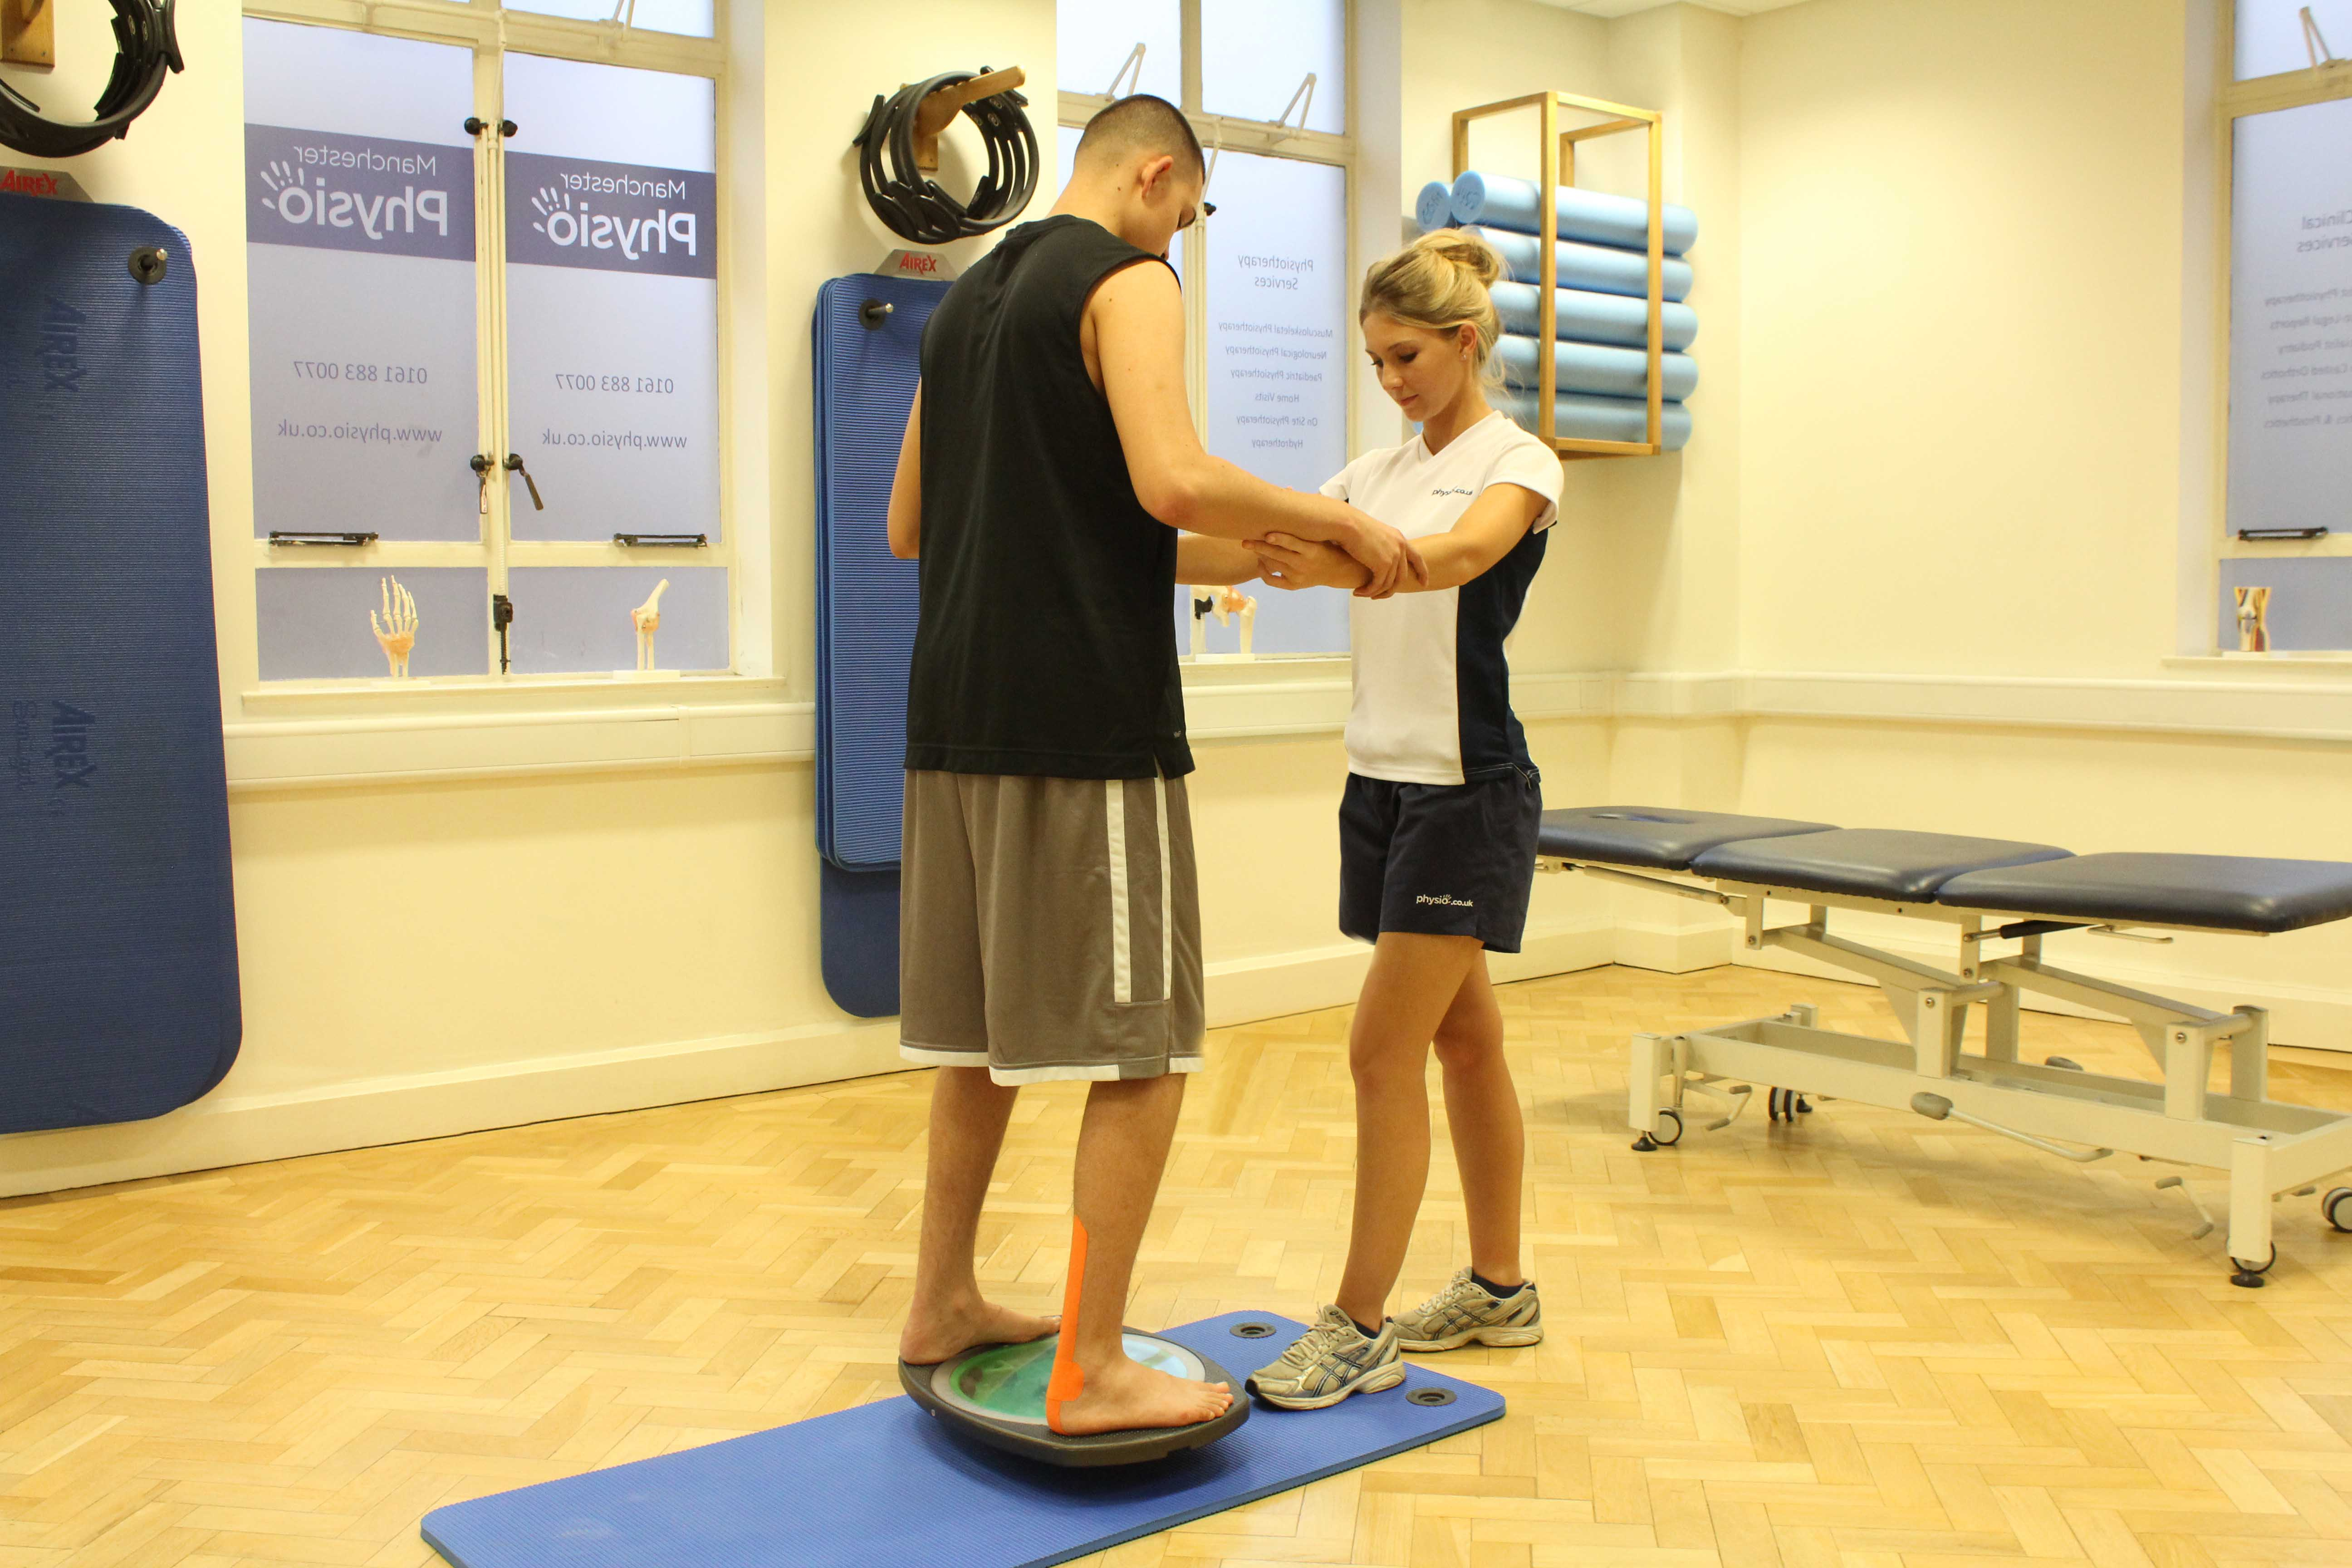 Use of taping during balance exercises to increase stability and proprioceptive awareness